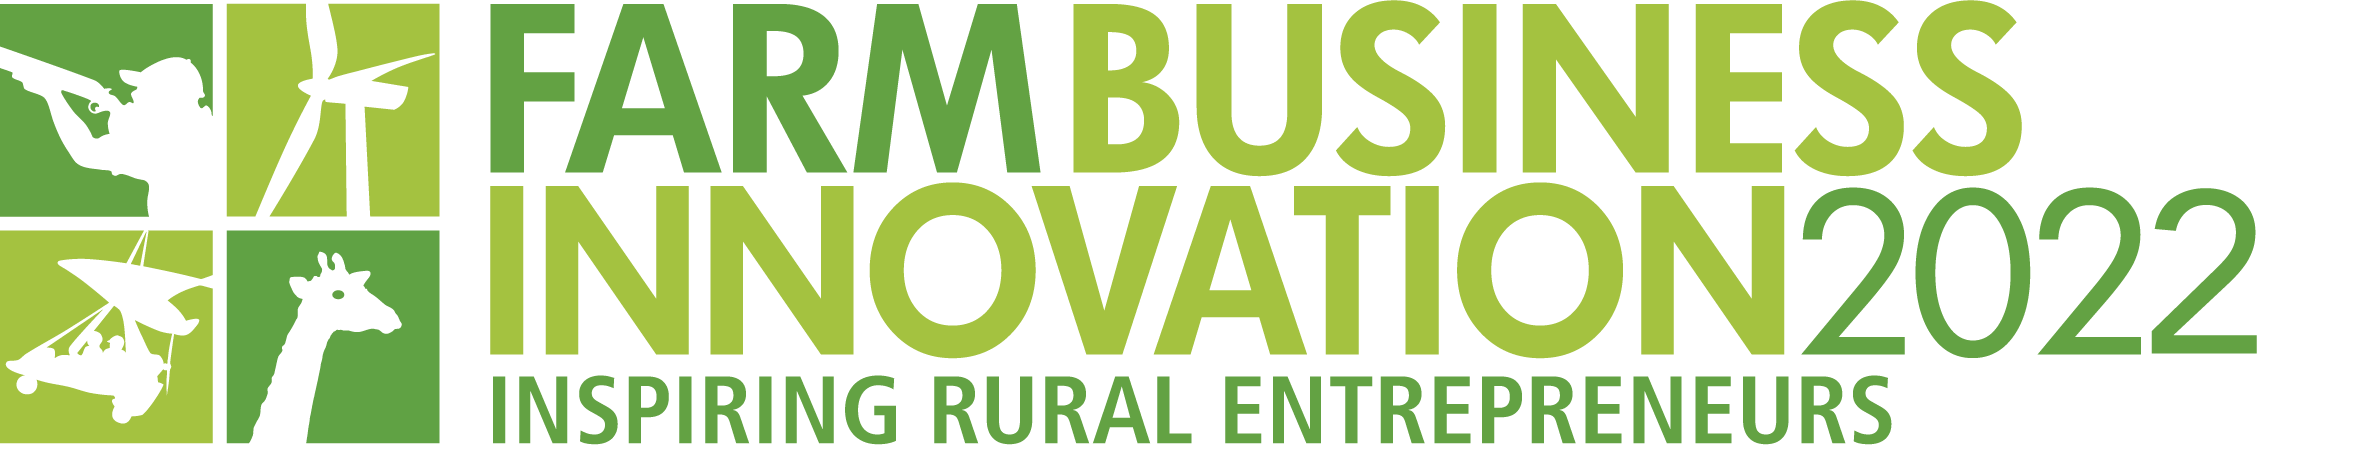 The Farm Business Innovation